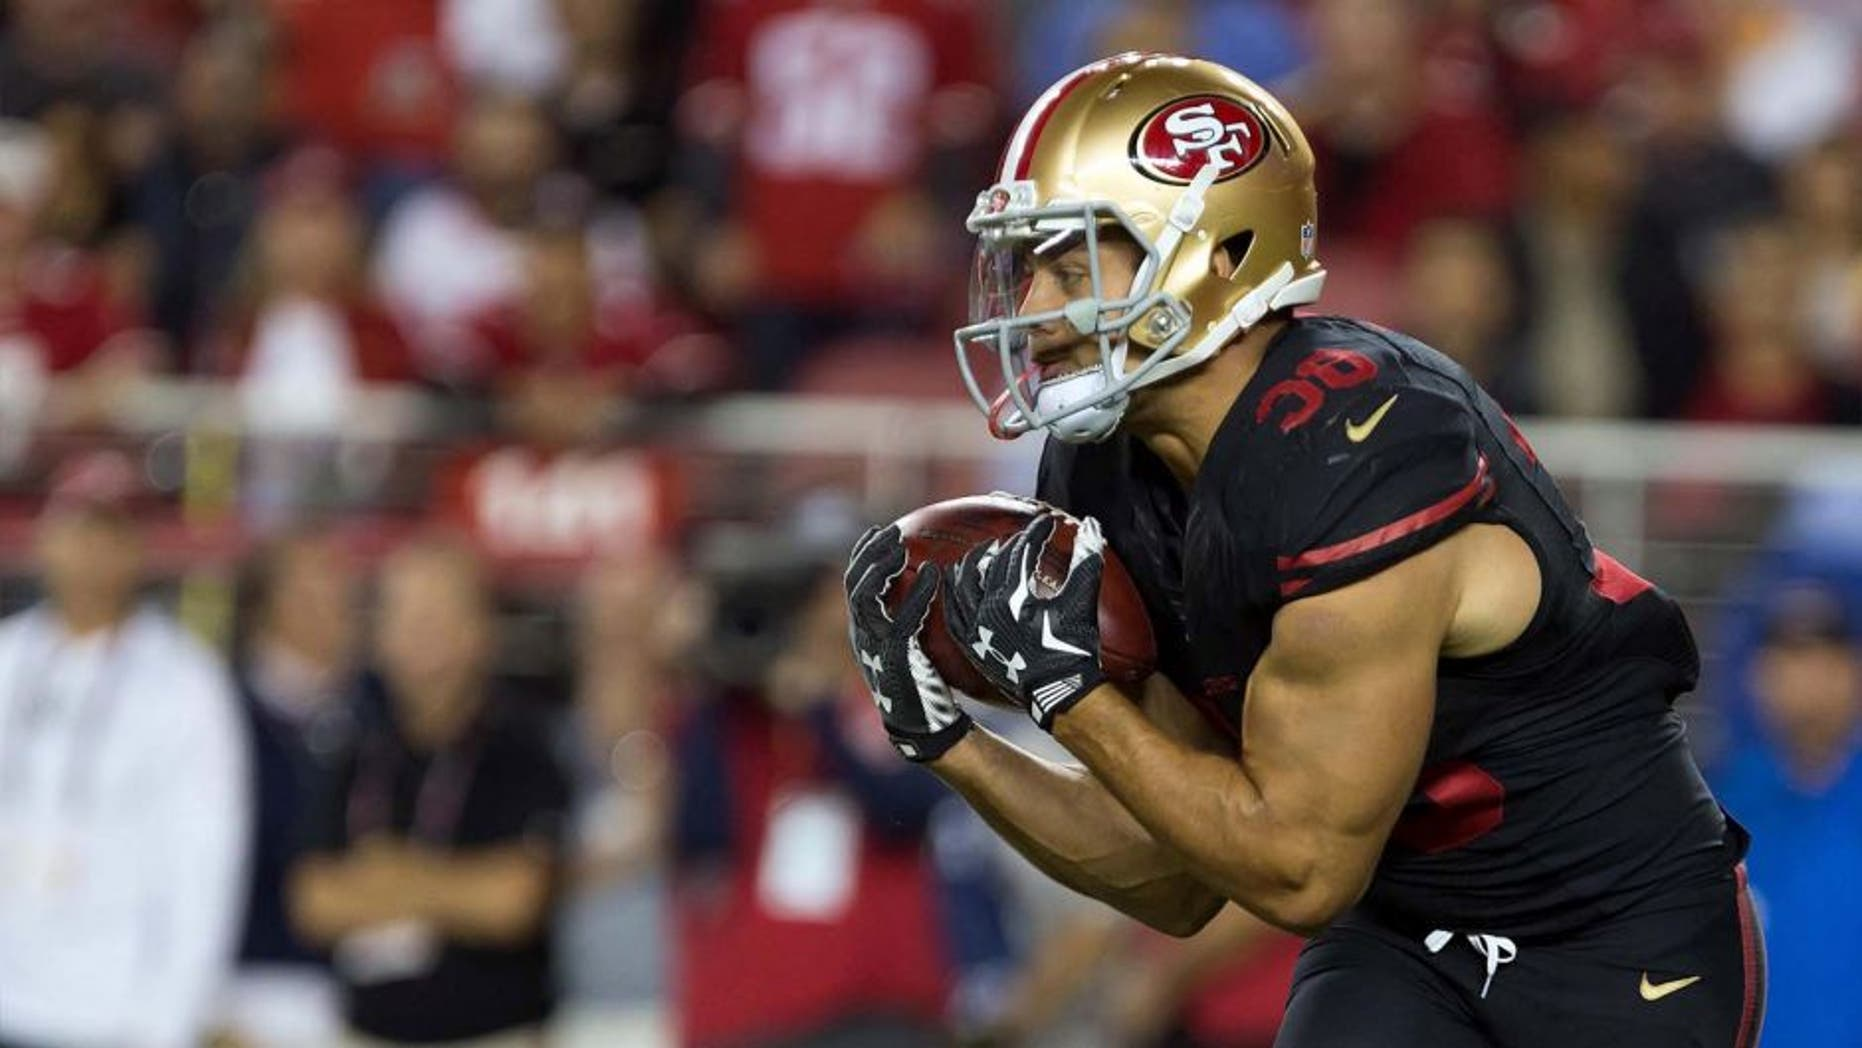 San Francisco 49ers running back Jarryd Hayne catches the ball on a punt return against the Minnesota Vikings during the second quarter at Levi's Stadium in Santa Clara, Calif., on Monday, Sept. 14, 2015.